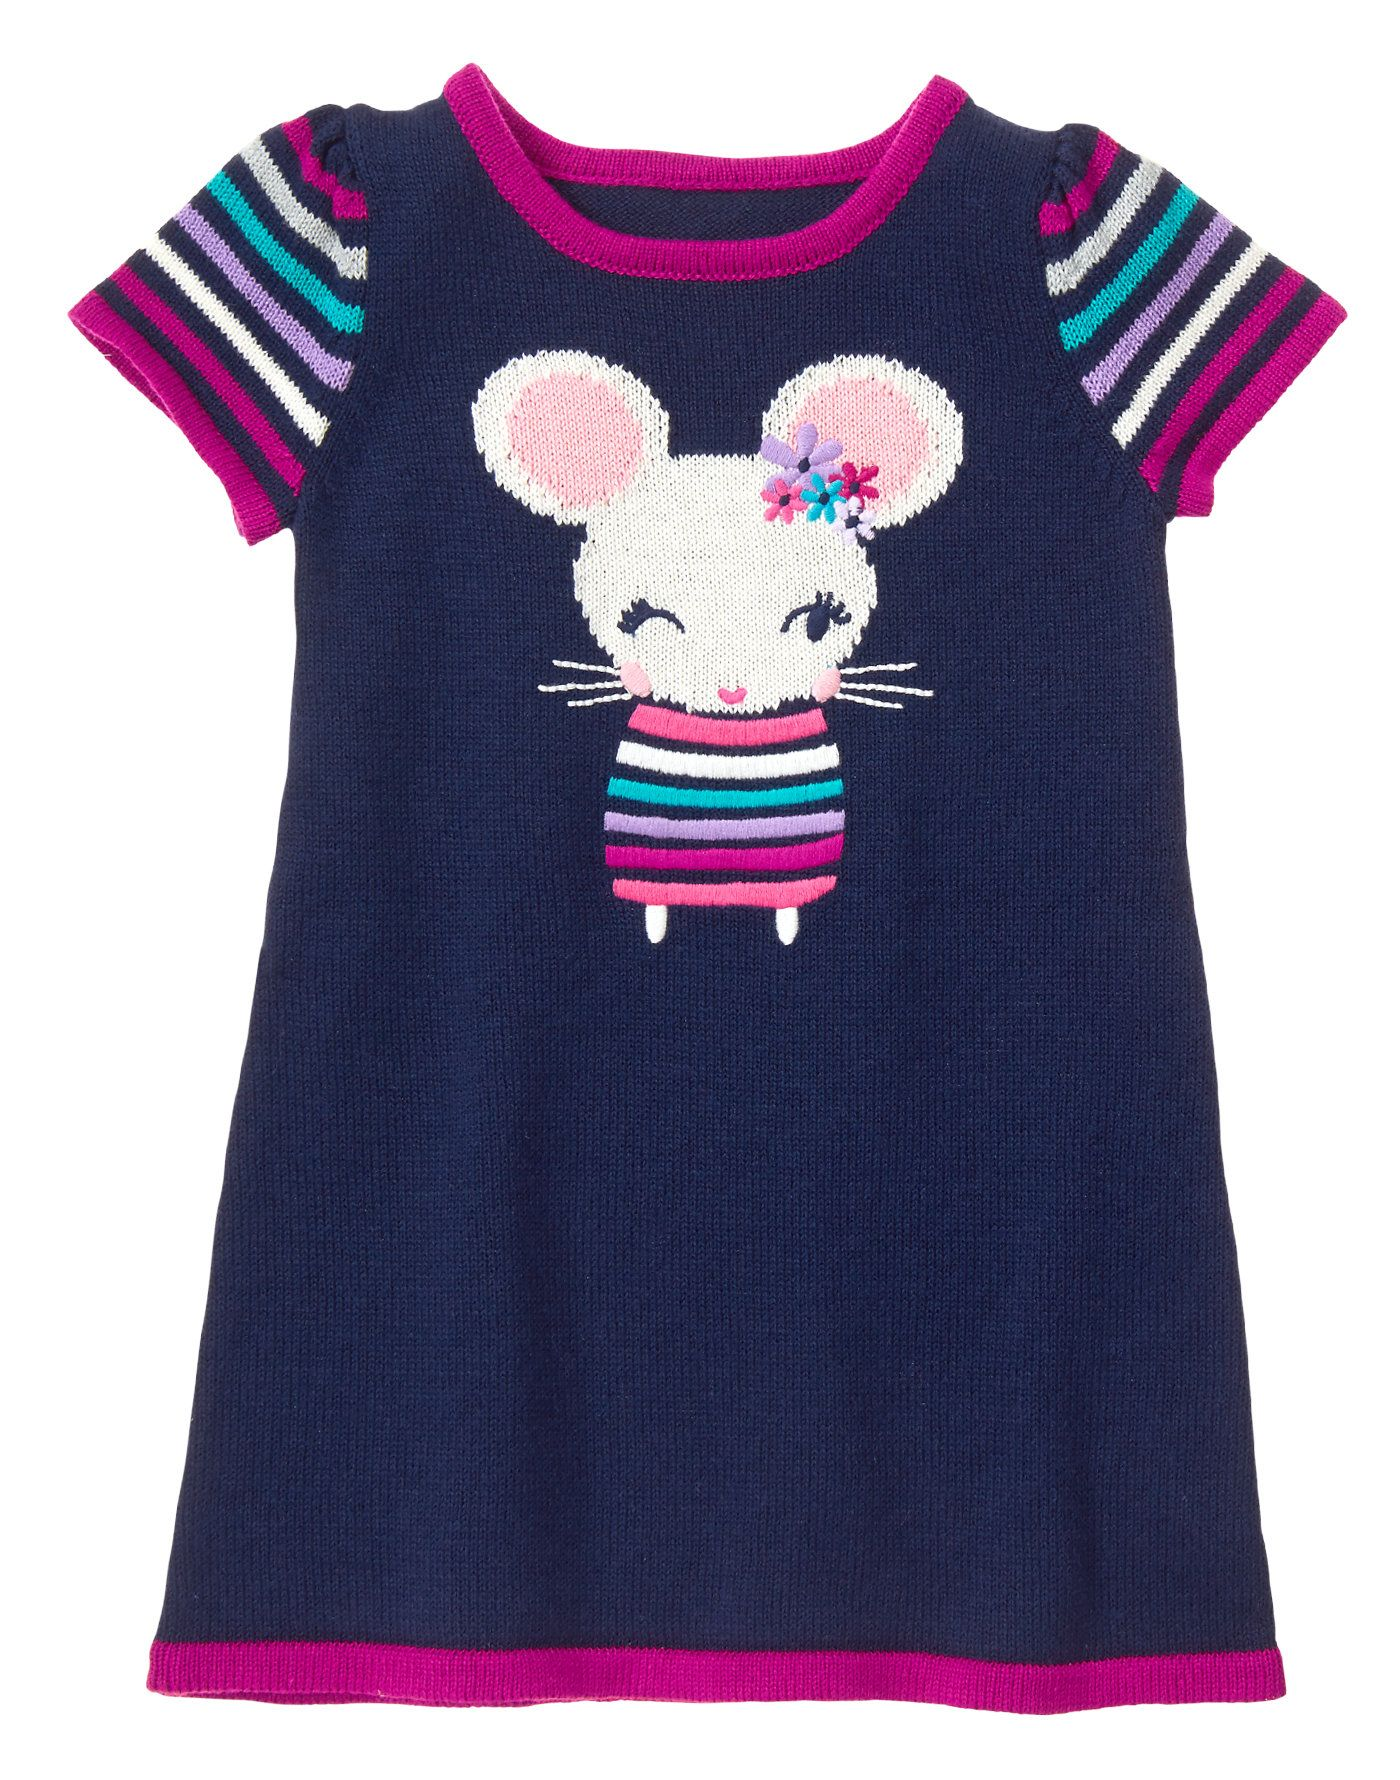 Mouse Sweater Dress My Designs Toddler Girl Outfits